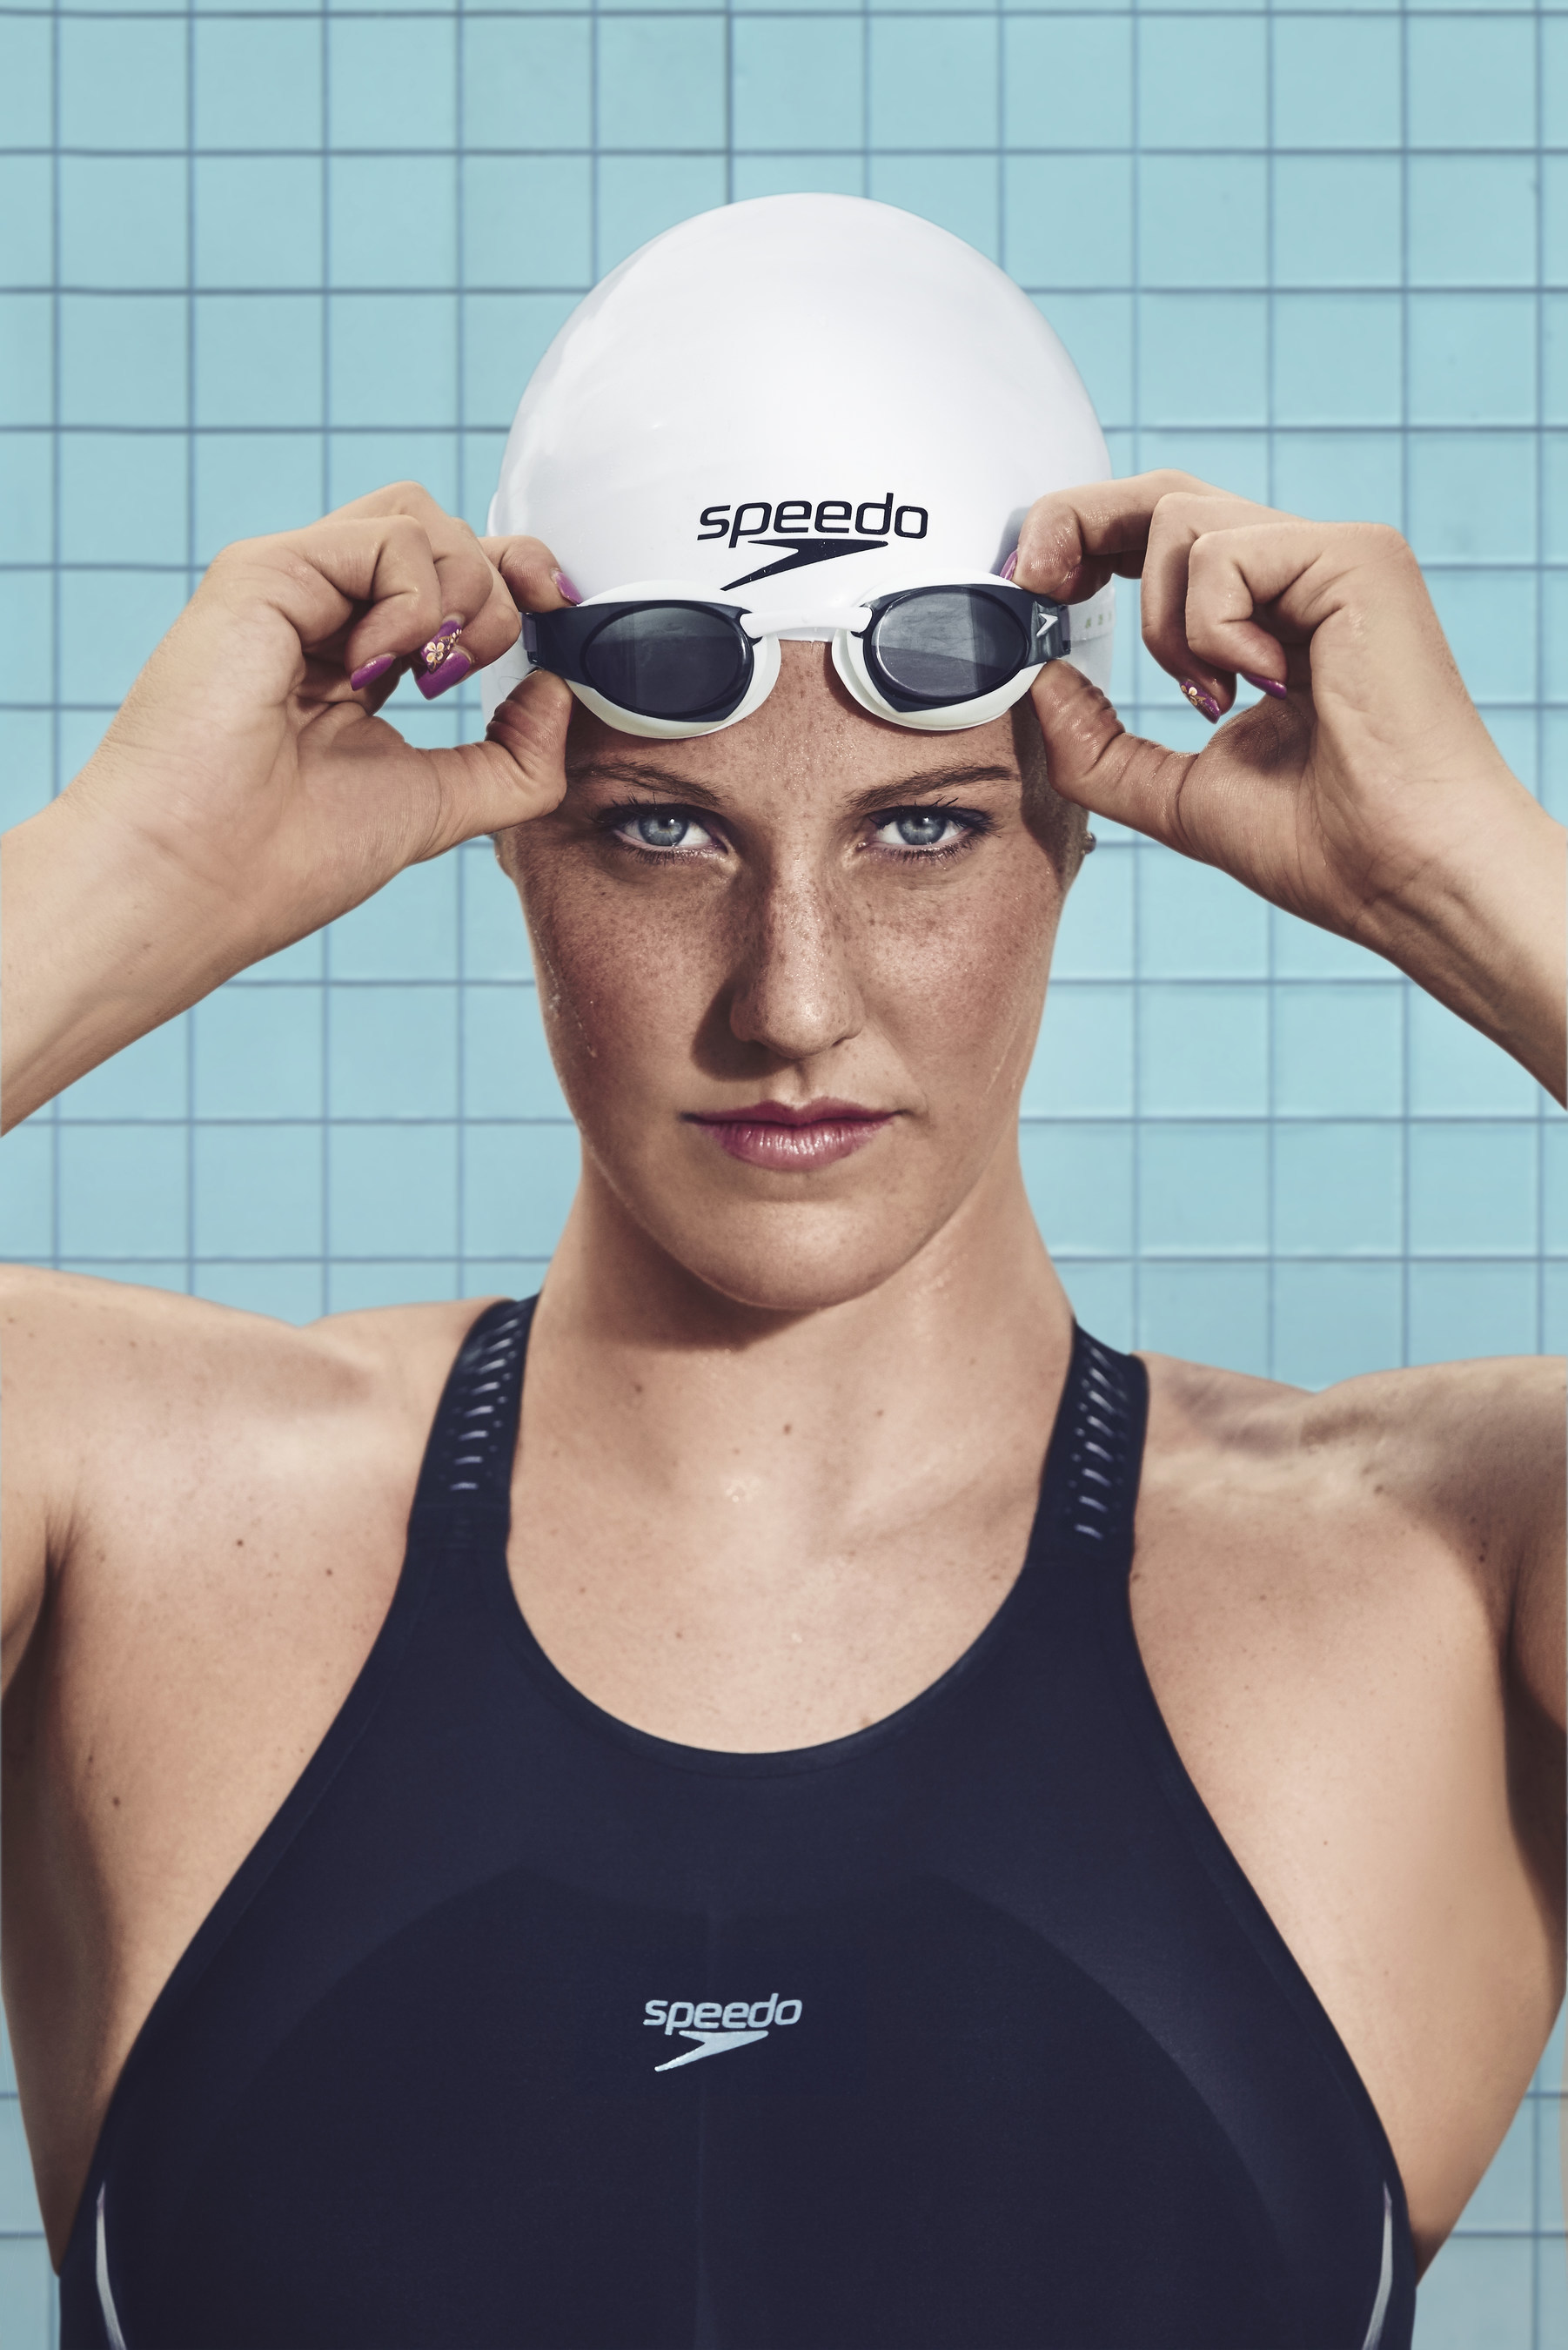 Missy Franklin is the newest member of Team Wheaties, joining a 90-year legacy of world-class athletes. A proven champion in and out of the pool, Franklin's success and character makes her an ideal fit for the brand.